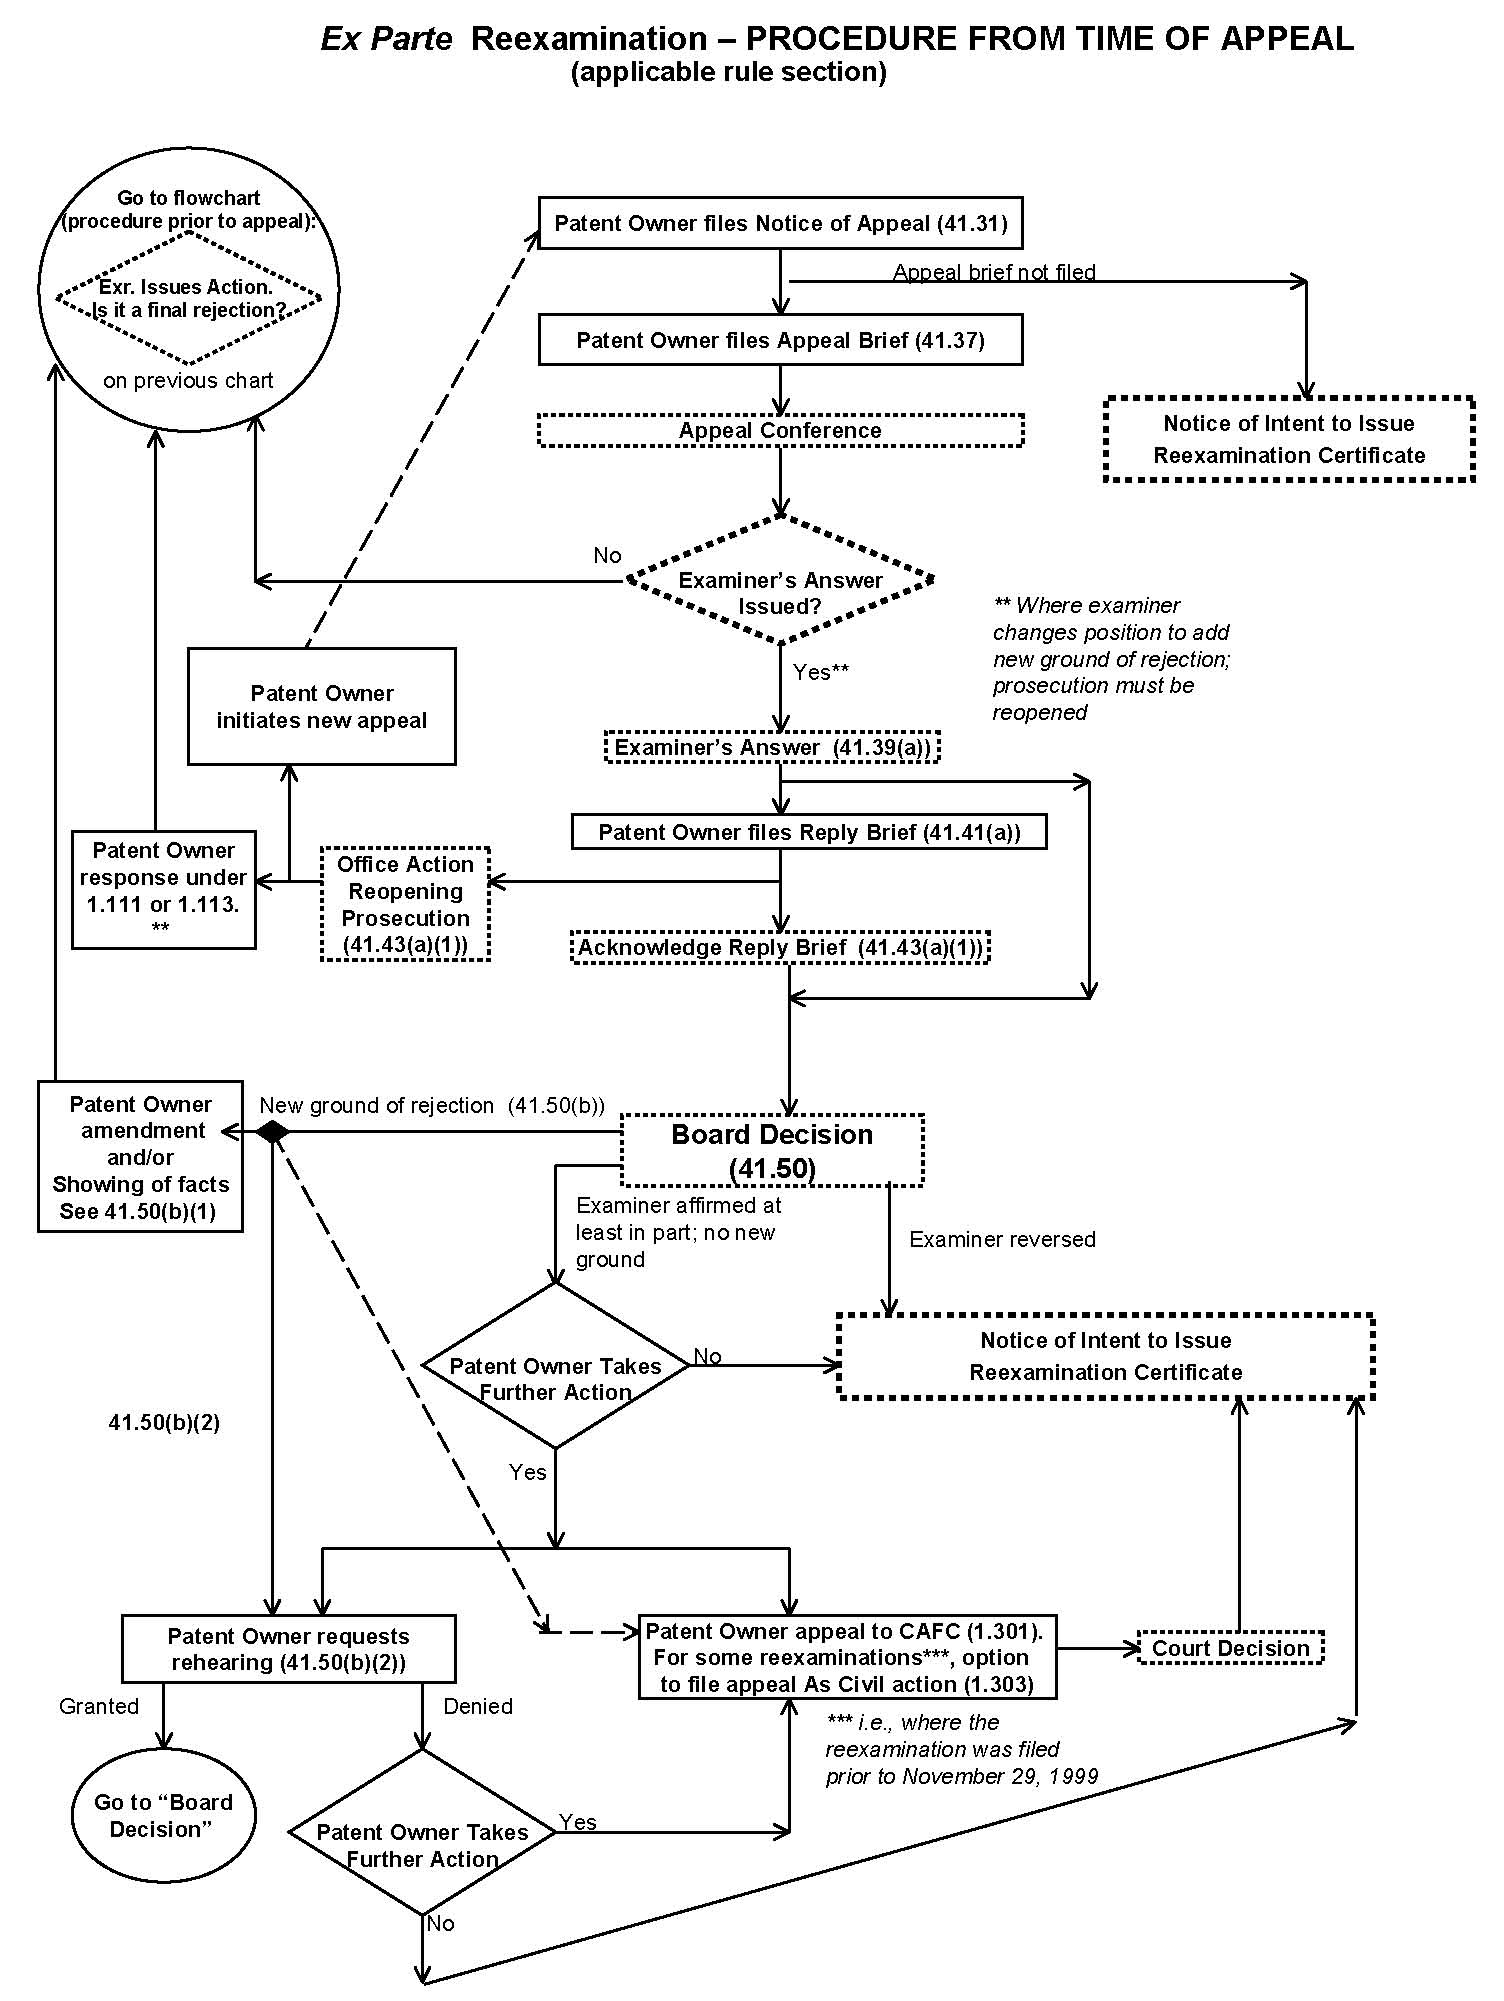 Mpep flowchart ex parte reexamination procedure from of appeal applicable rule section nvjuhfo Gallery